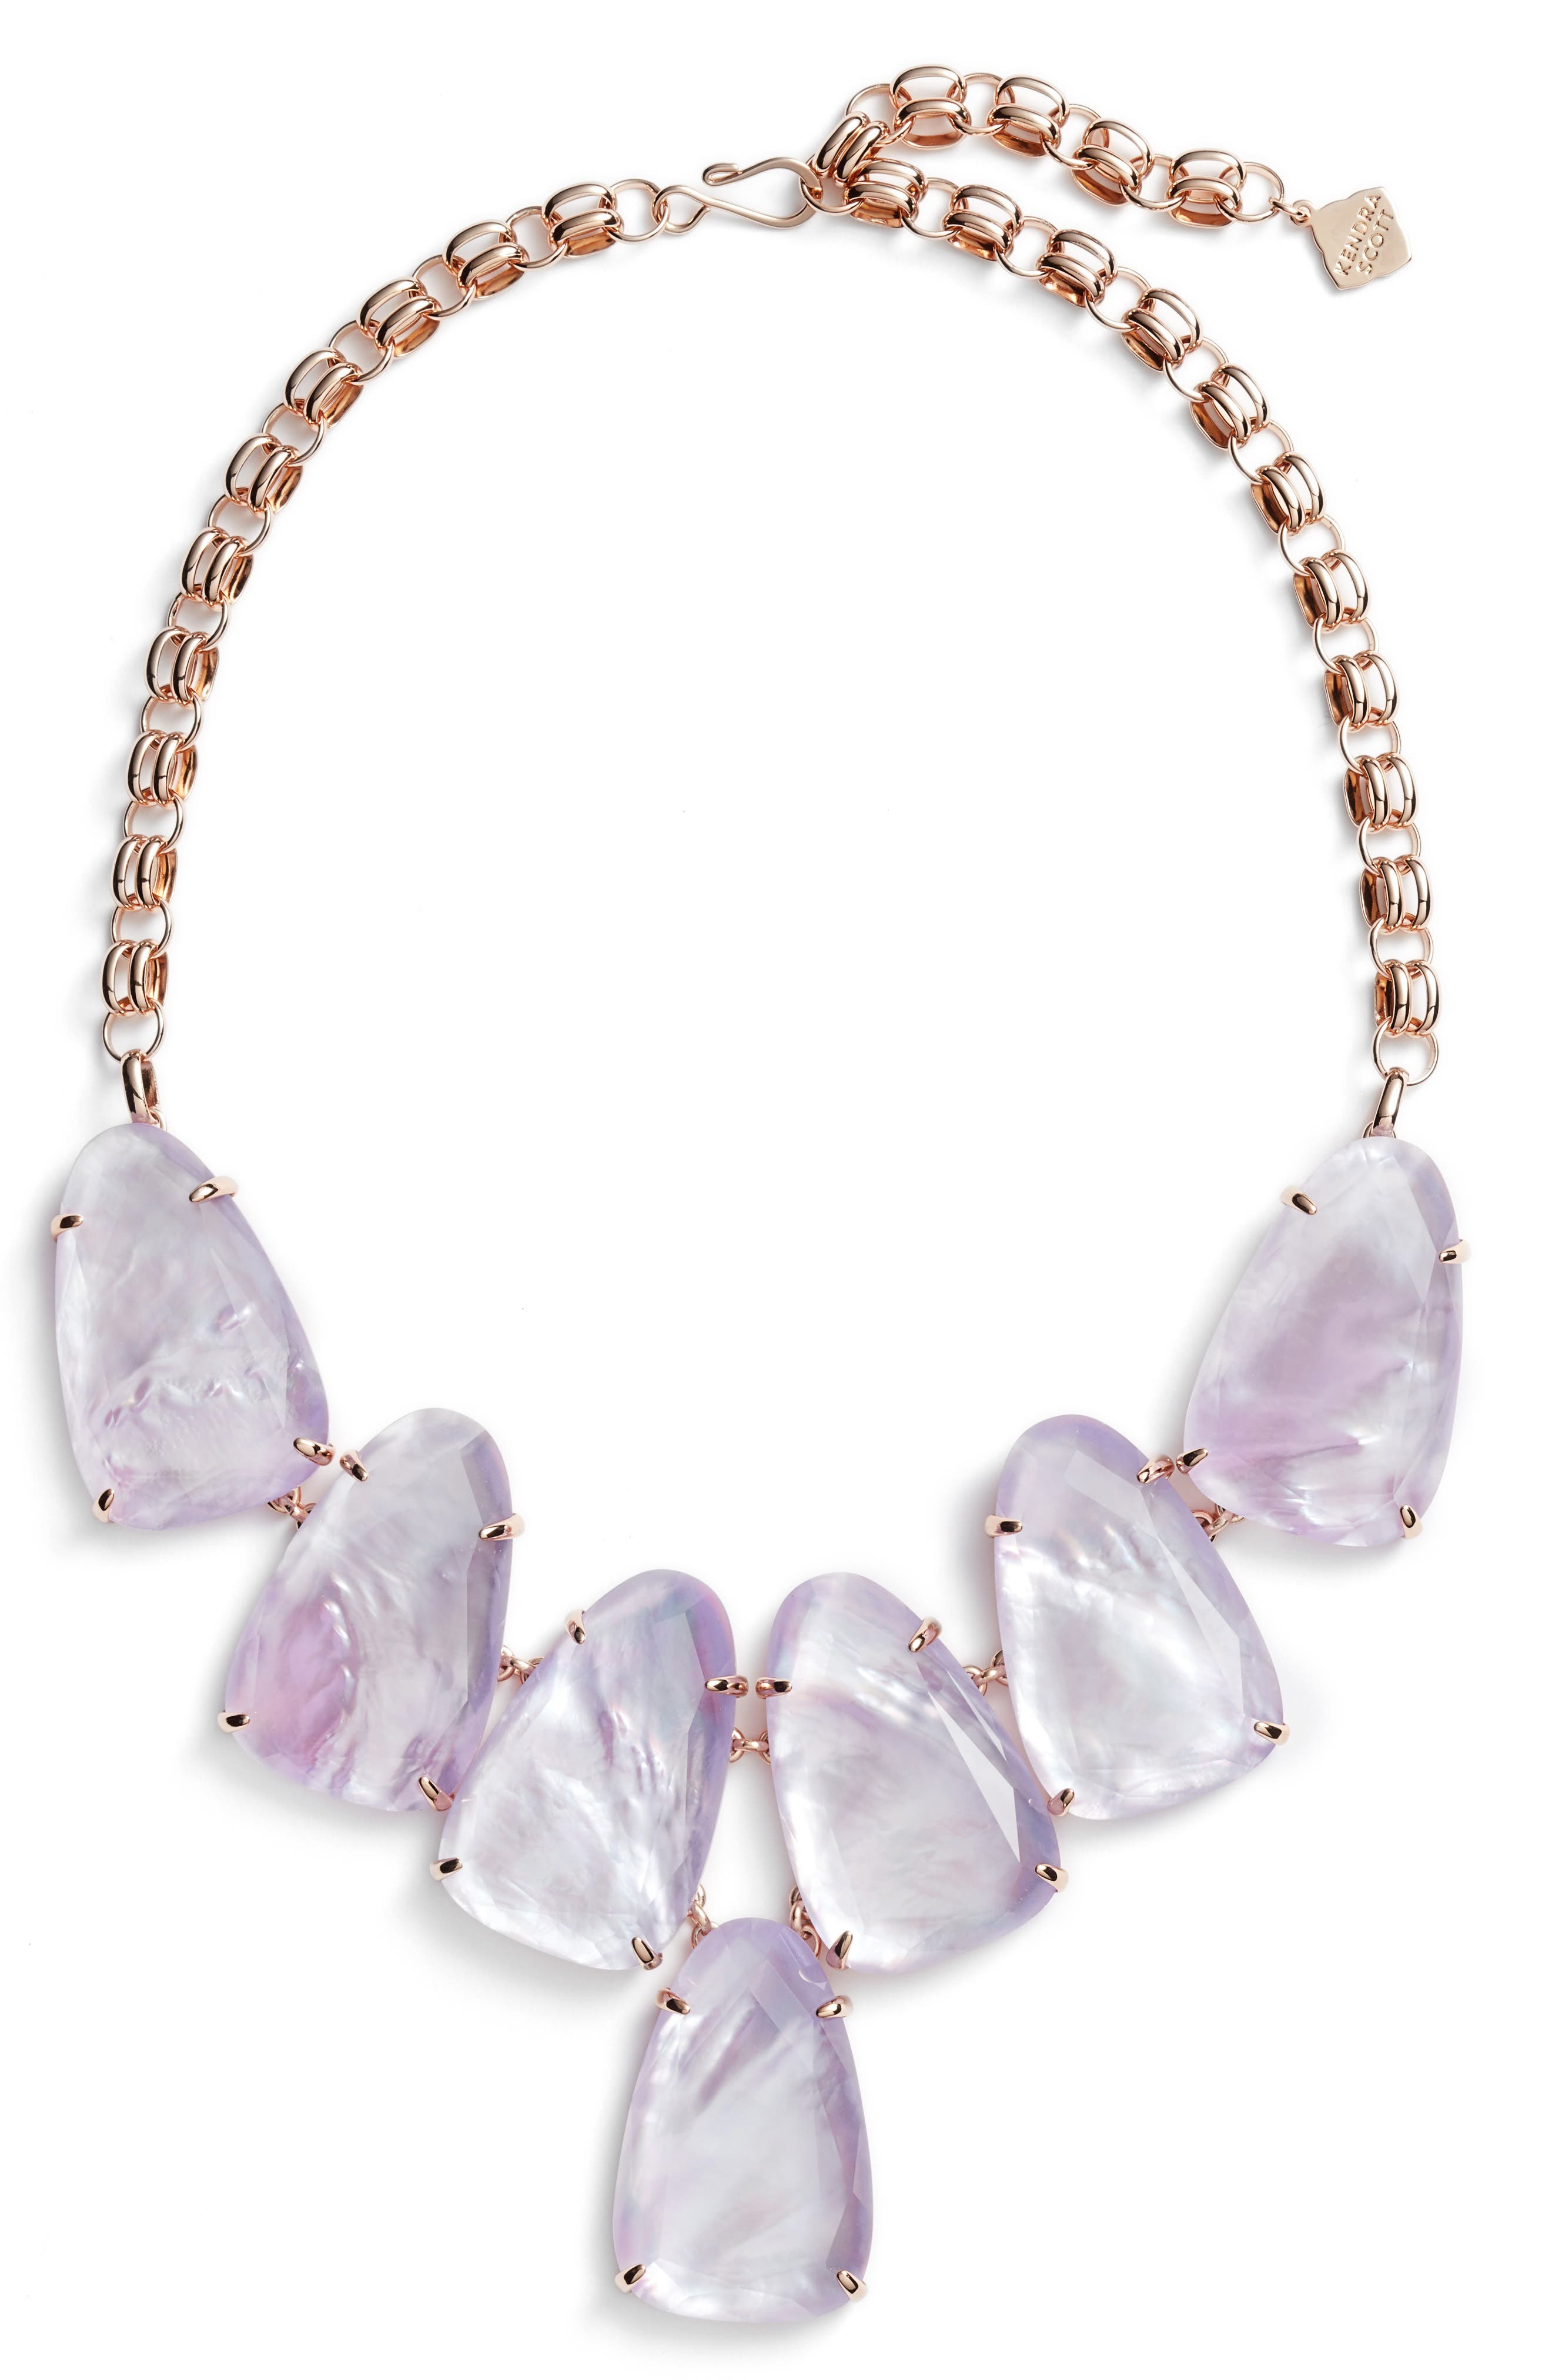 Harlow Necklace,                             Main thumbnail 1, color,                             Lilac Mop/ Rose Gold